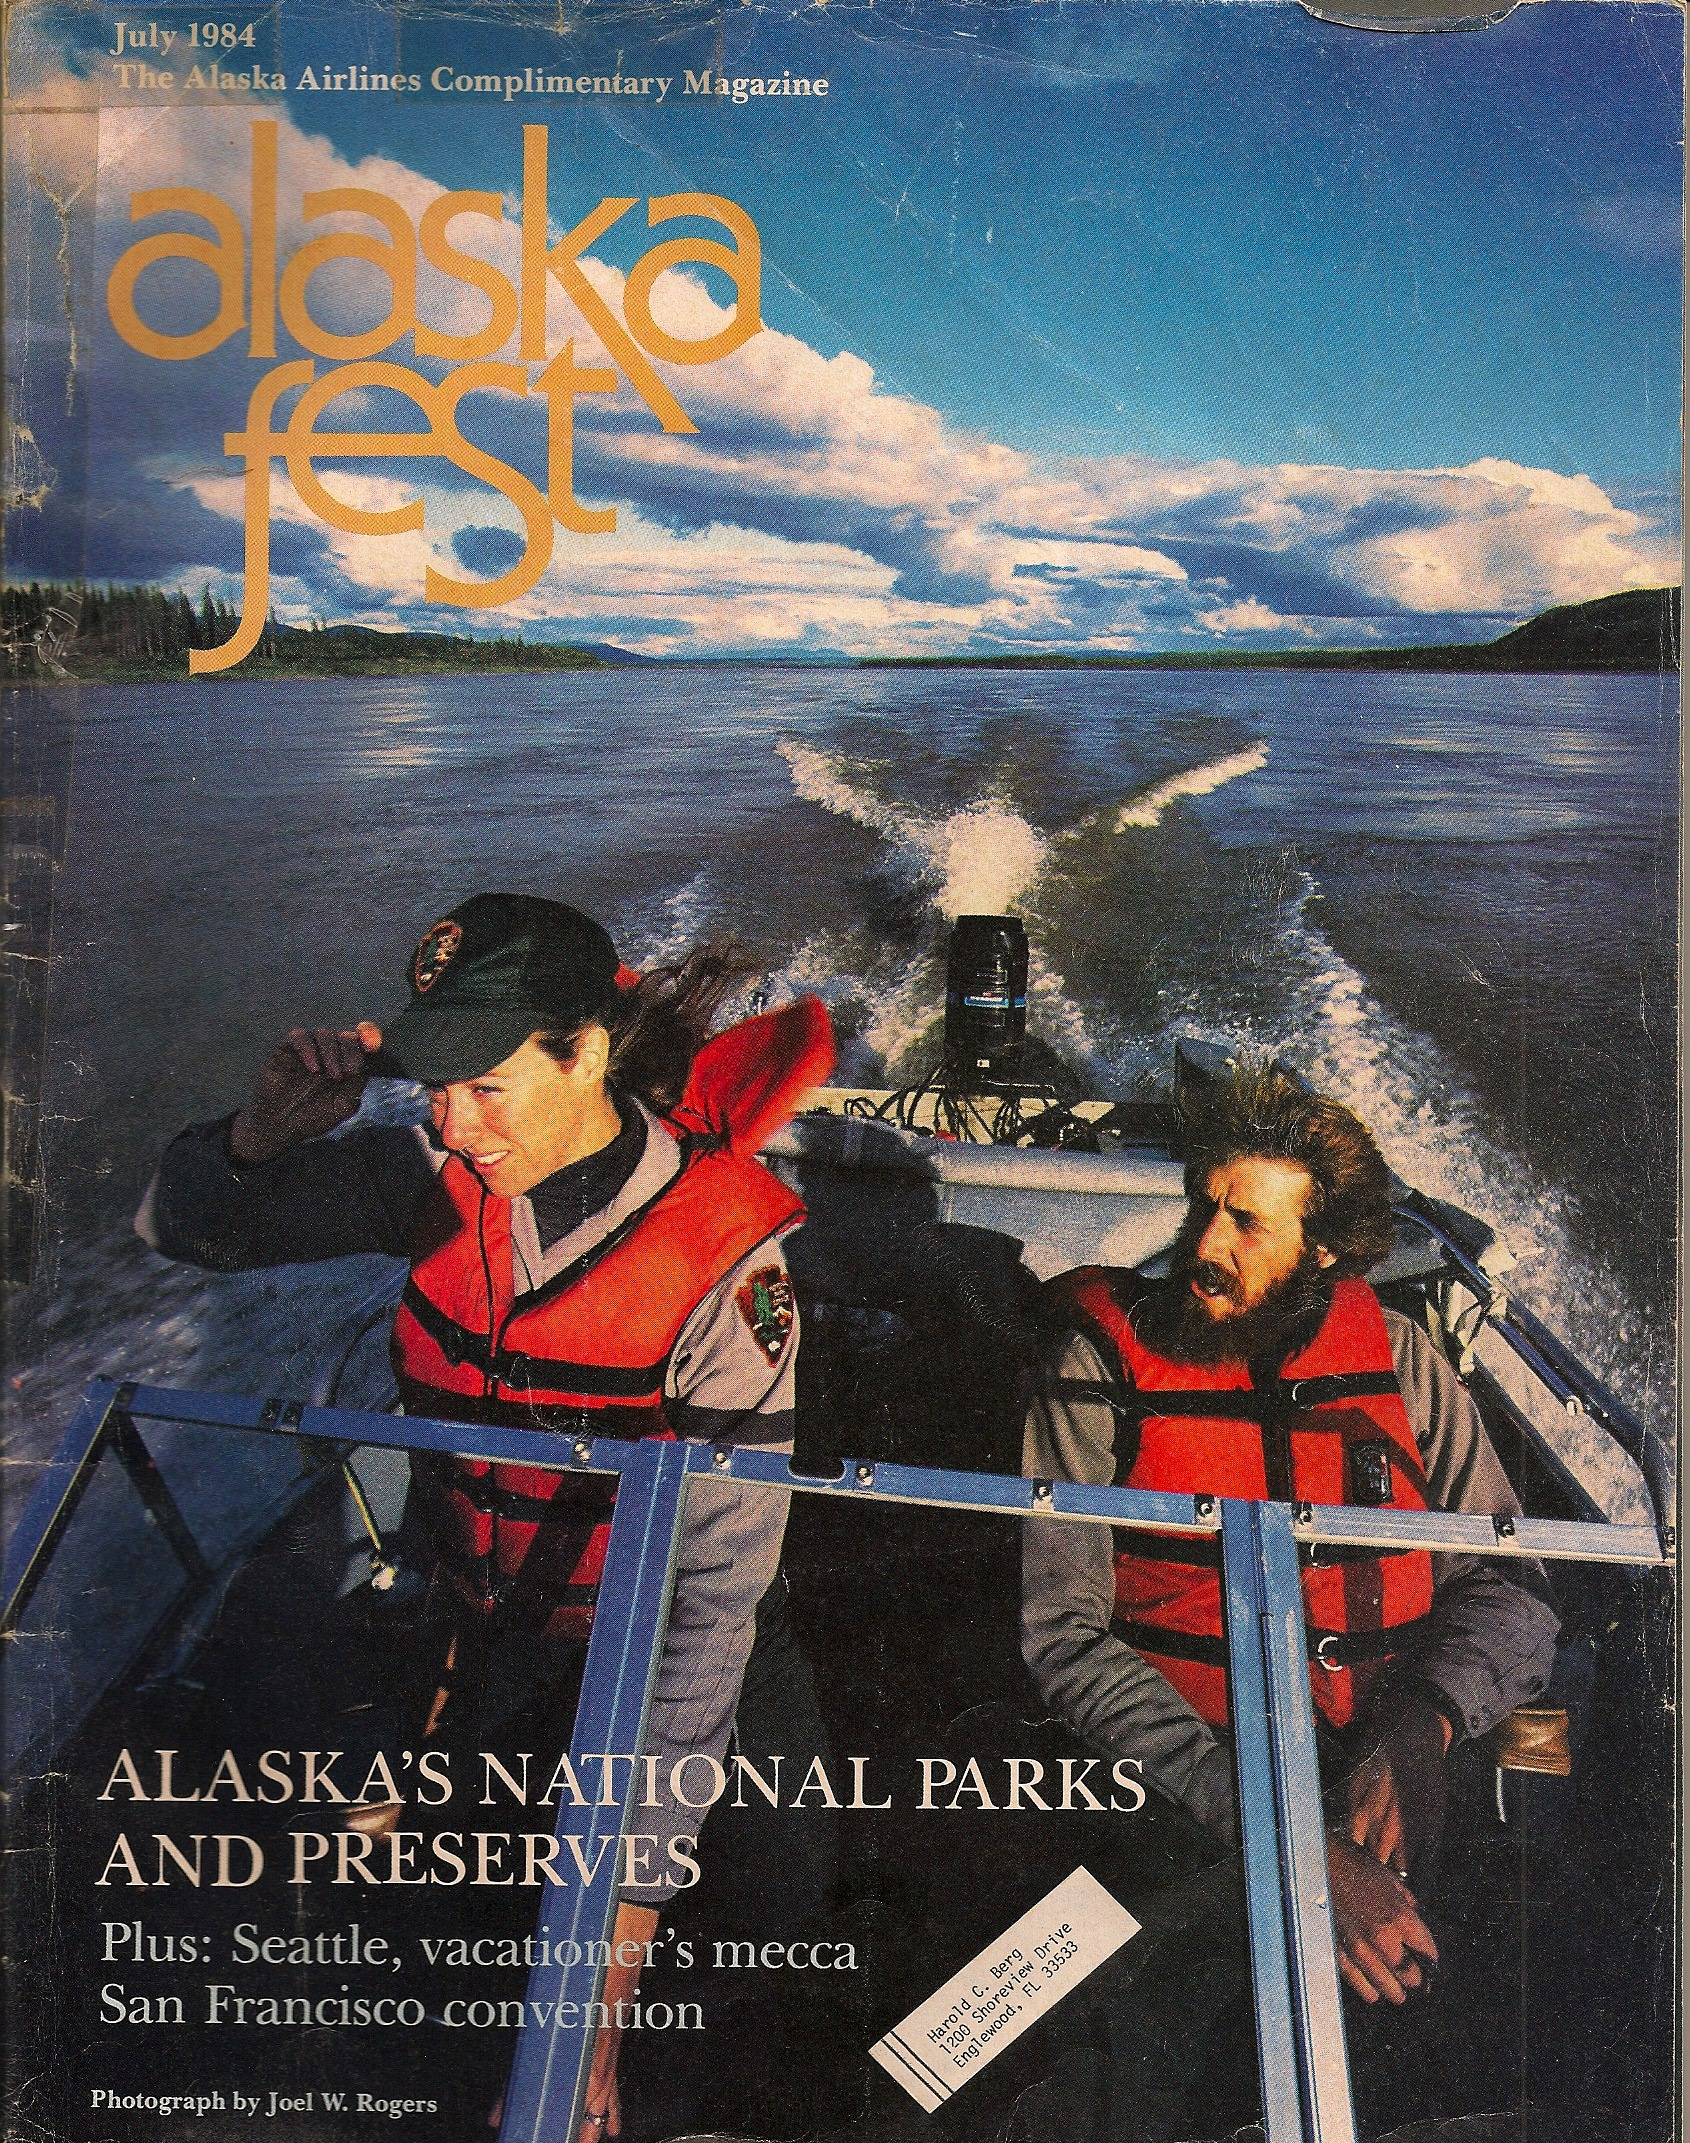 Colette and Bill, Back Country Rangers in Alaska - 1983